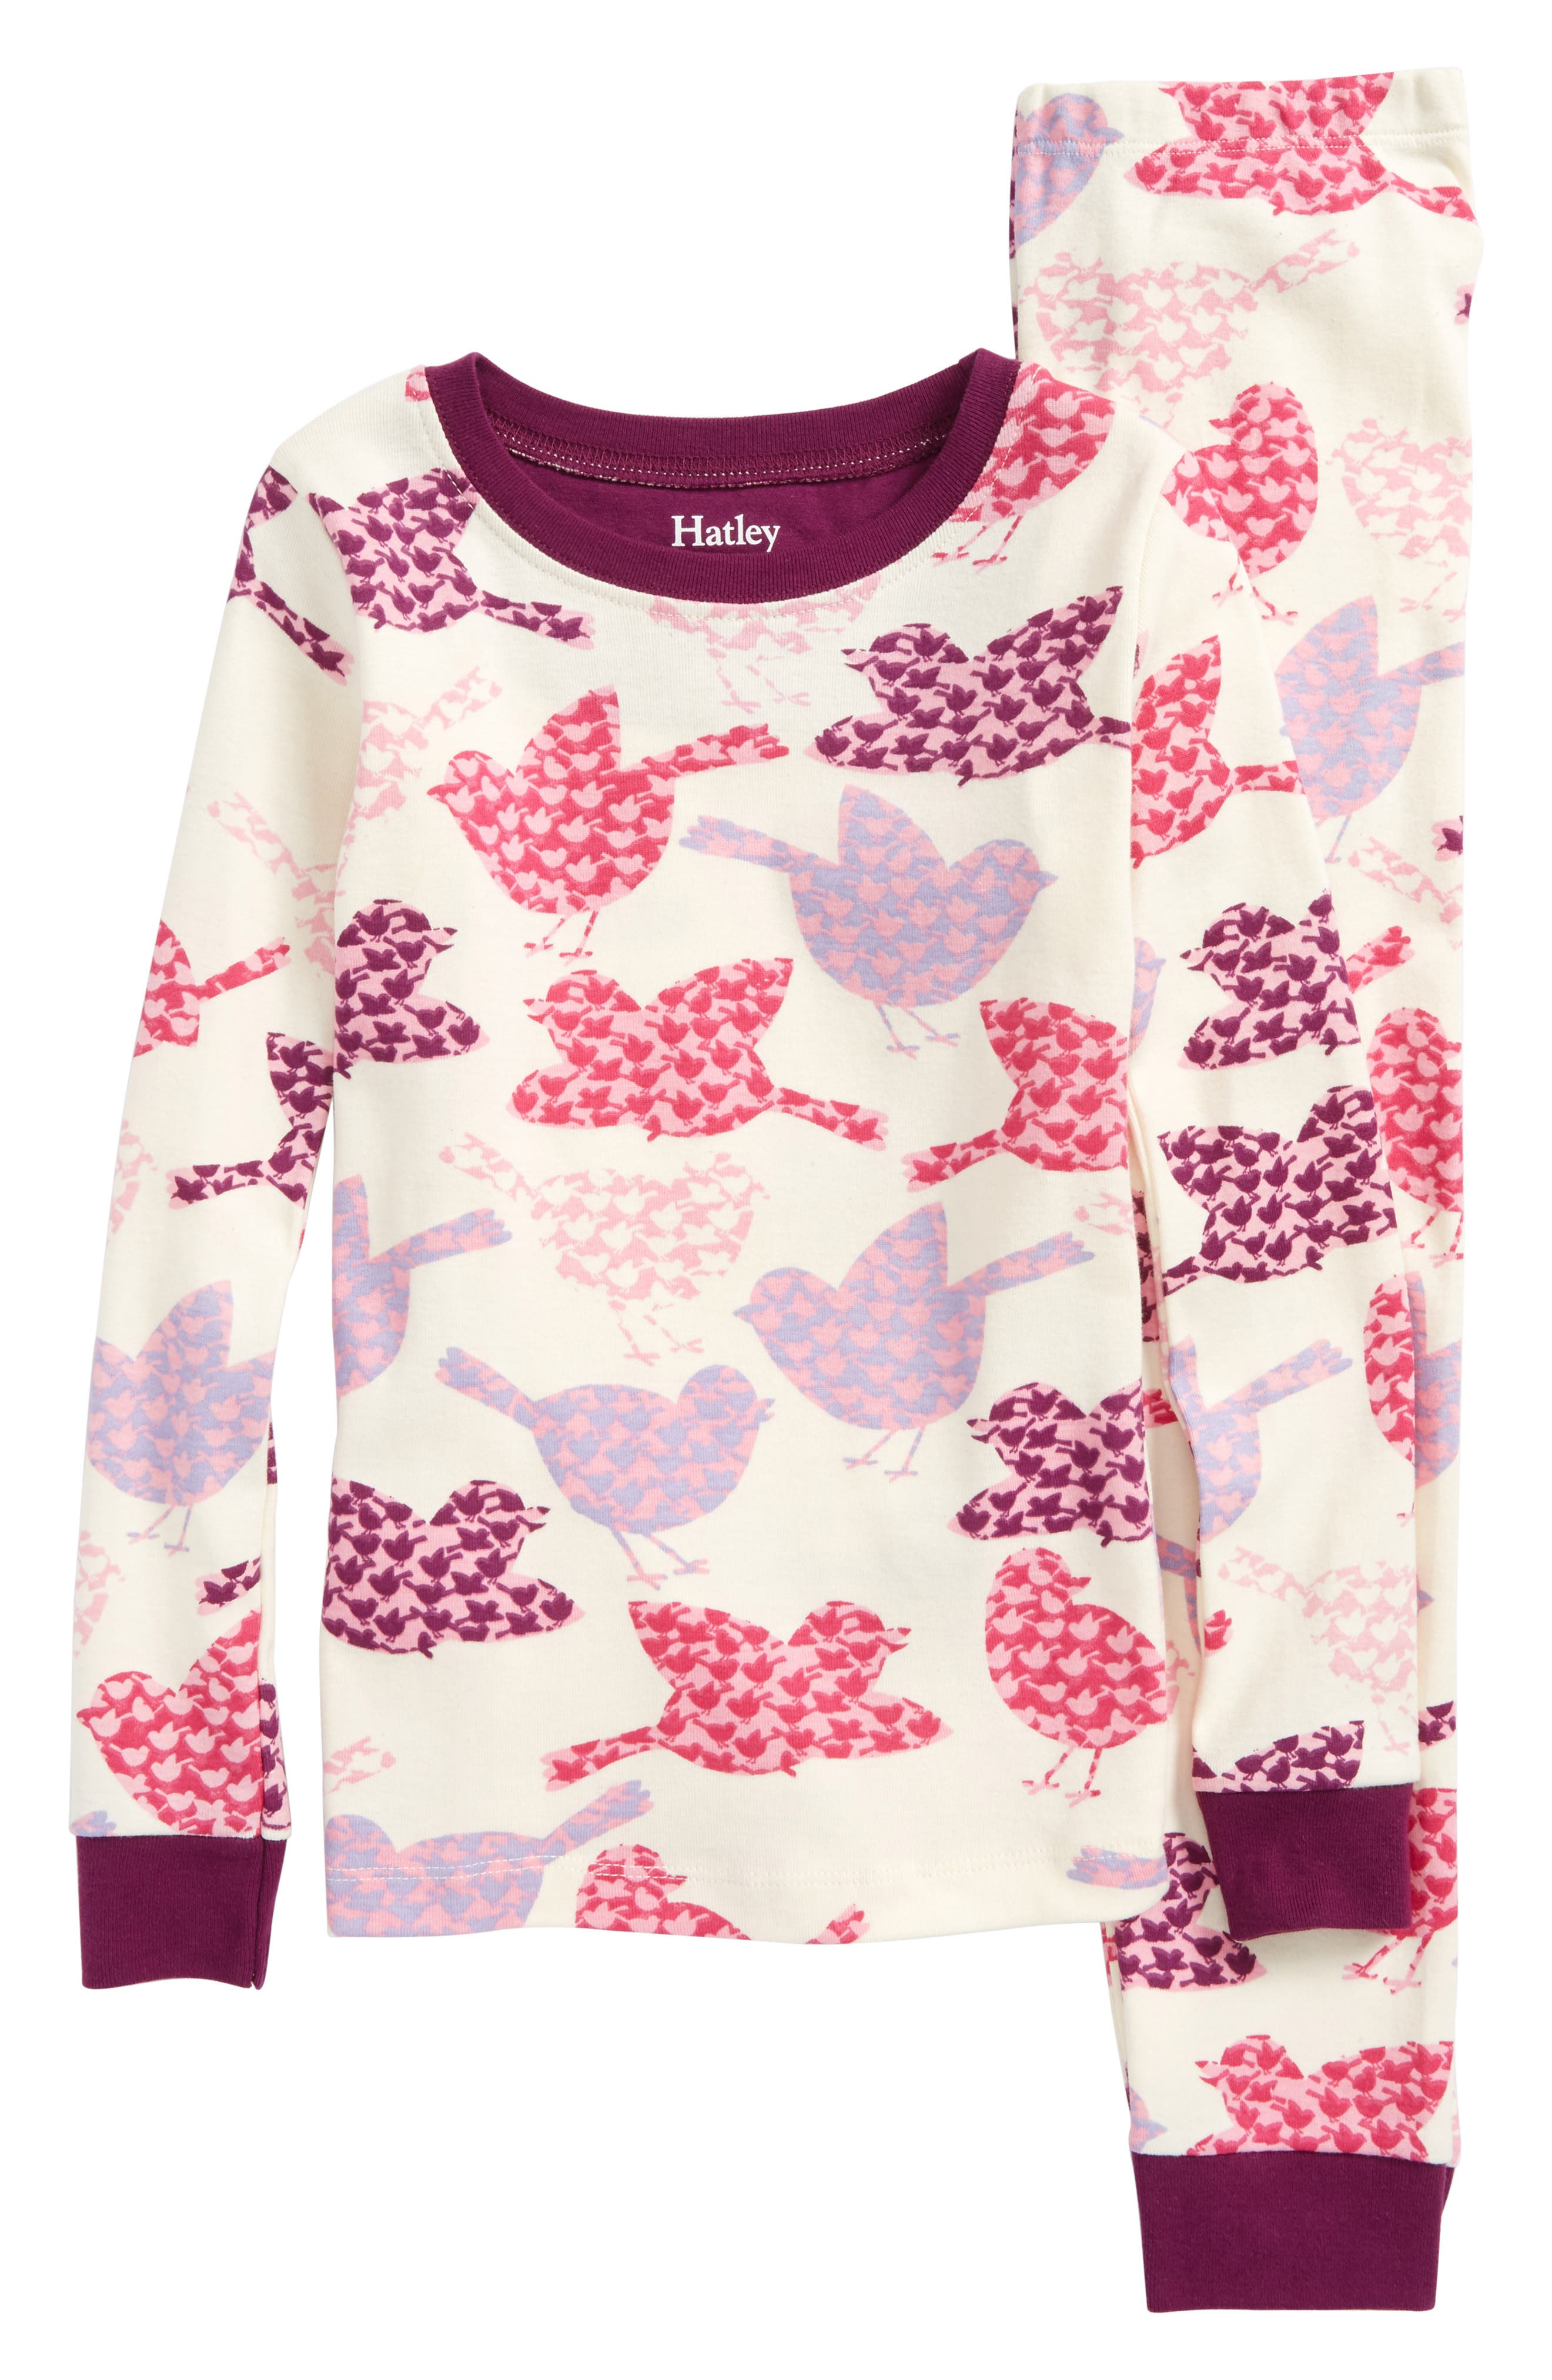 Bird Print Organic Cotton Fitted Two-Piece Pajamas,                             Main thumbnail 1, color,                             100